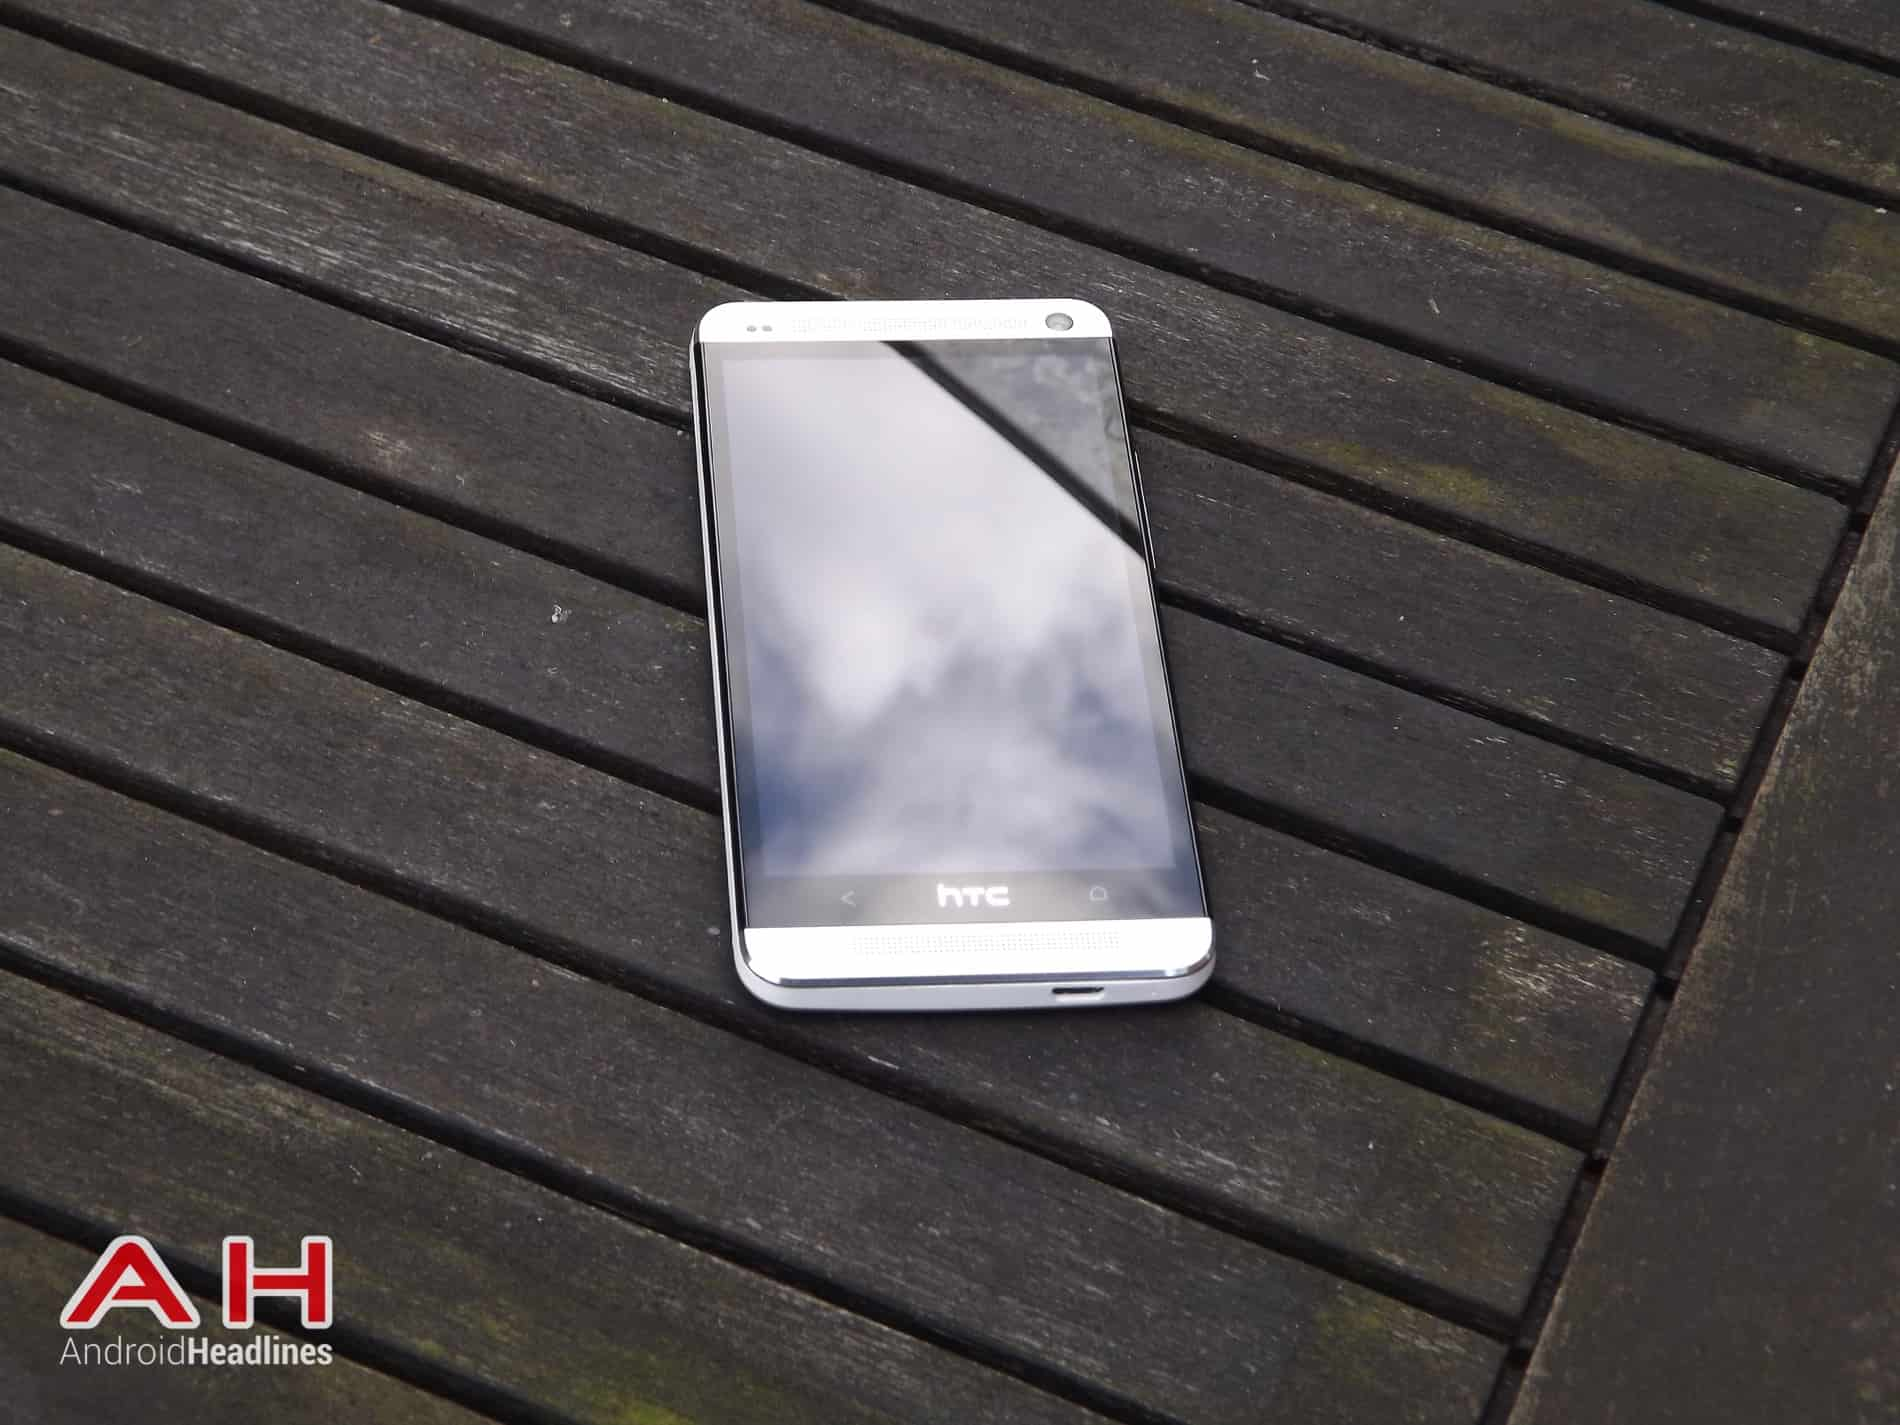 HTC One M7 HD AH 20